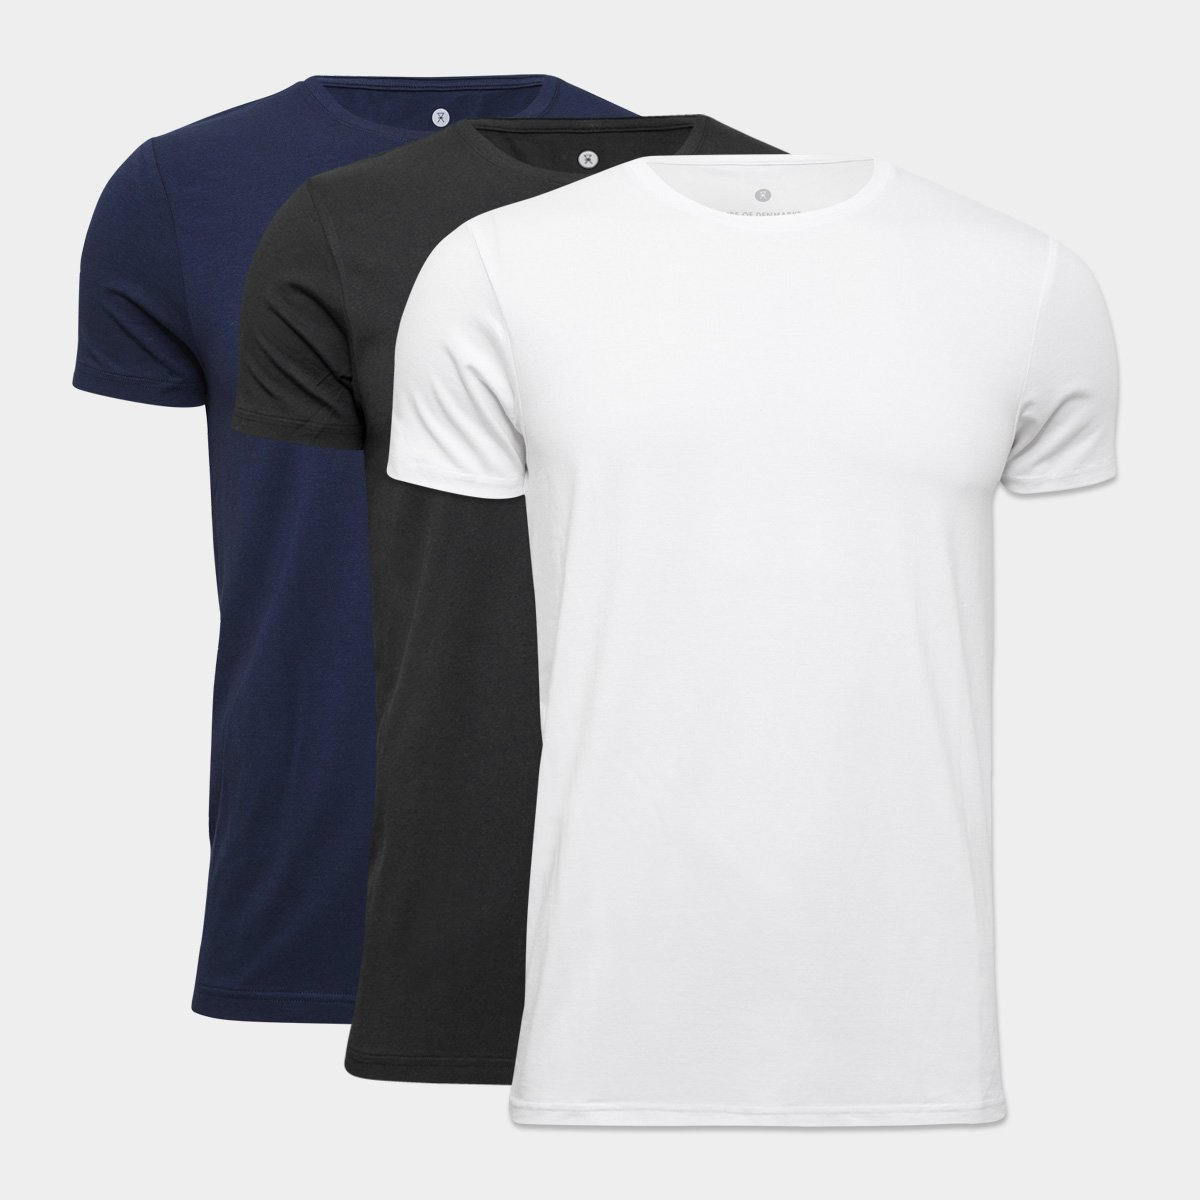 Image of   3 pak basic bambus t-shirts, blå, sort, hvid